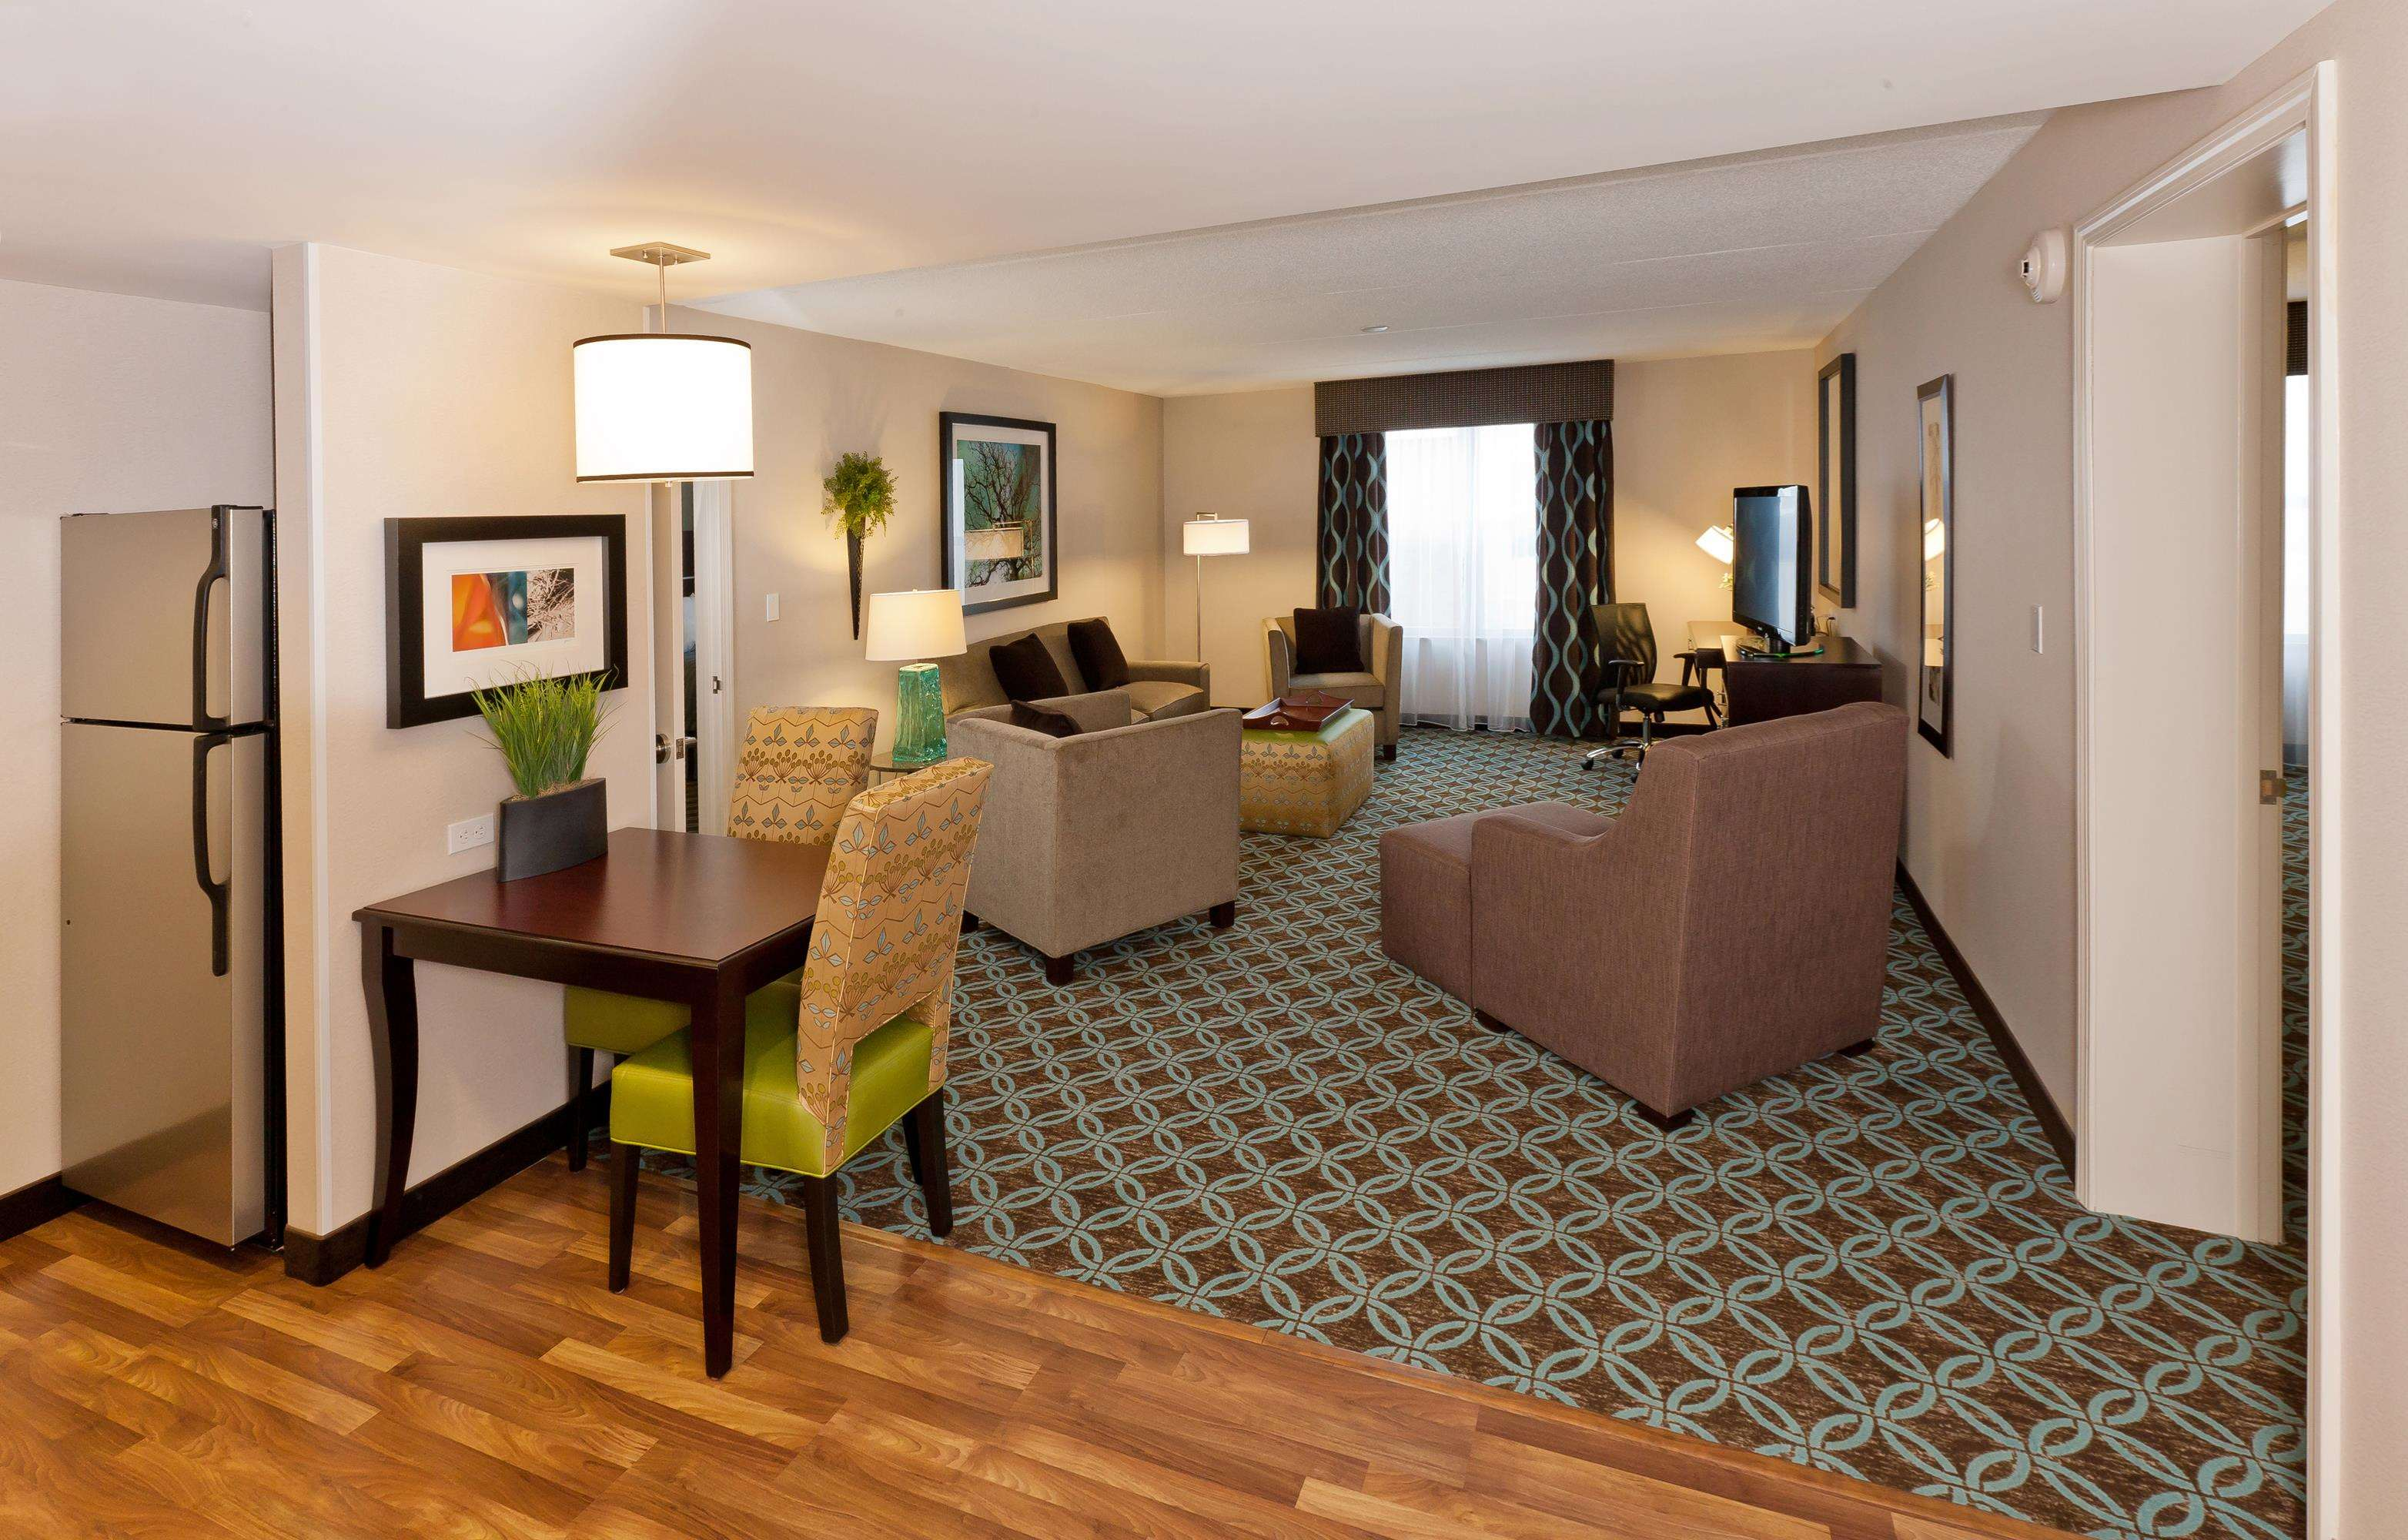 Homewood Suites by Hilton Boston/Canton, MA image 24